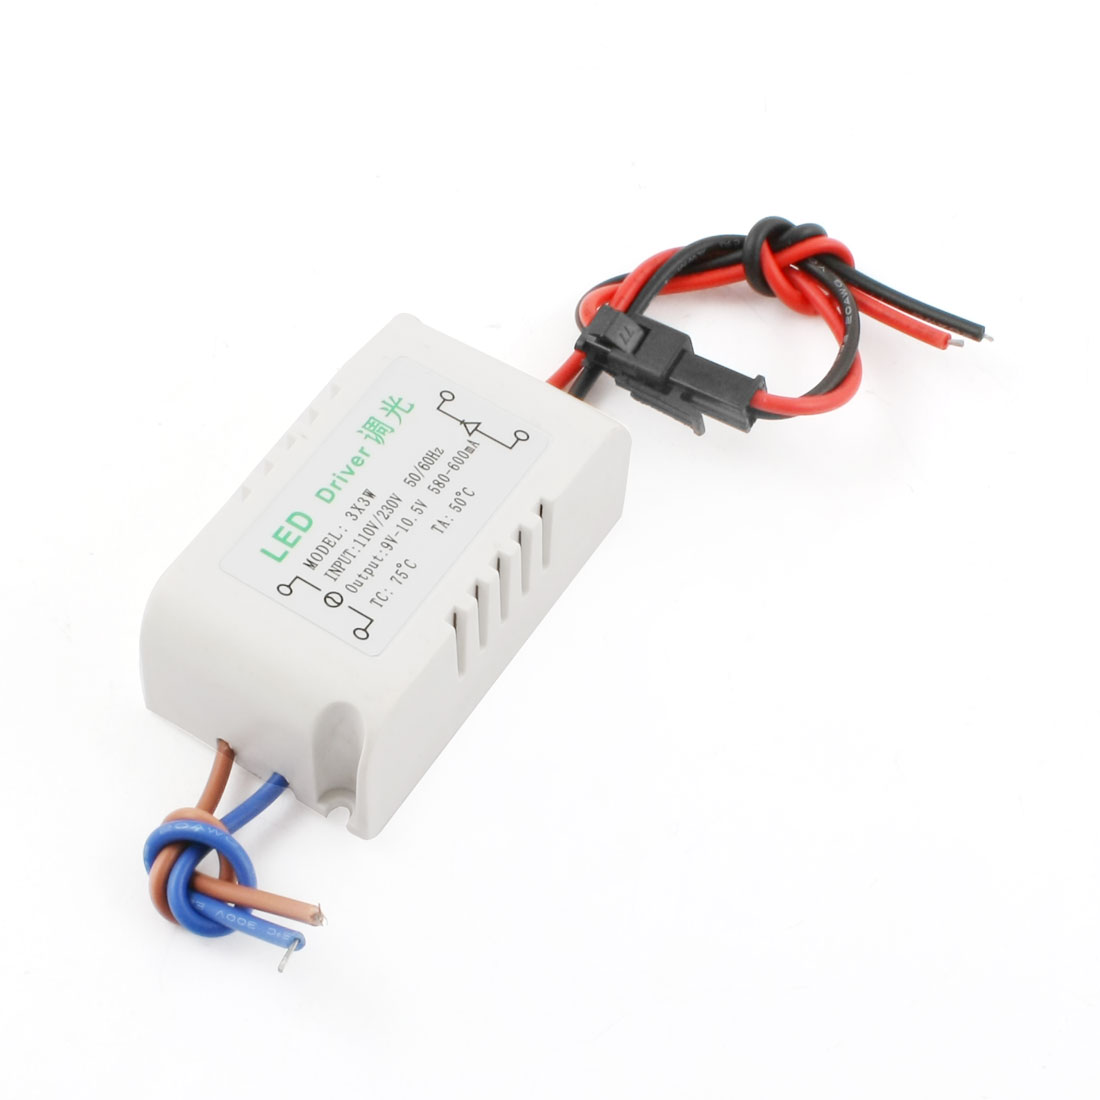 AC 110V/230V to DC 9-10.5V 500-600mA 3x3W Waterproof LED Light Dimmer Driver Power Converter Adapter